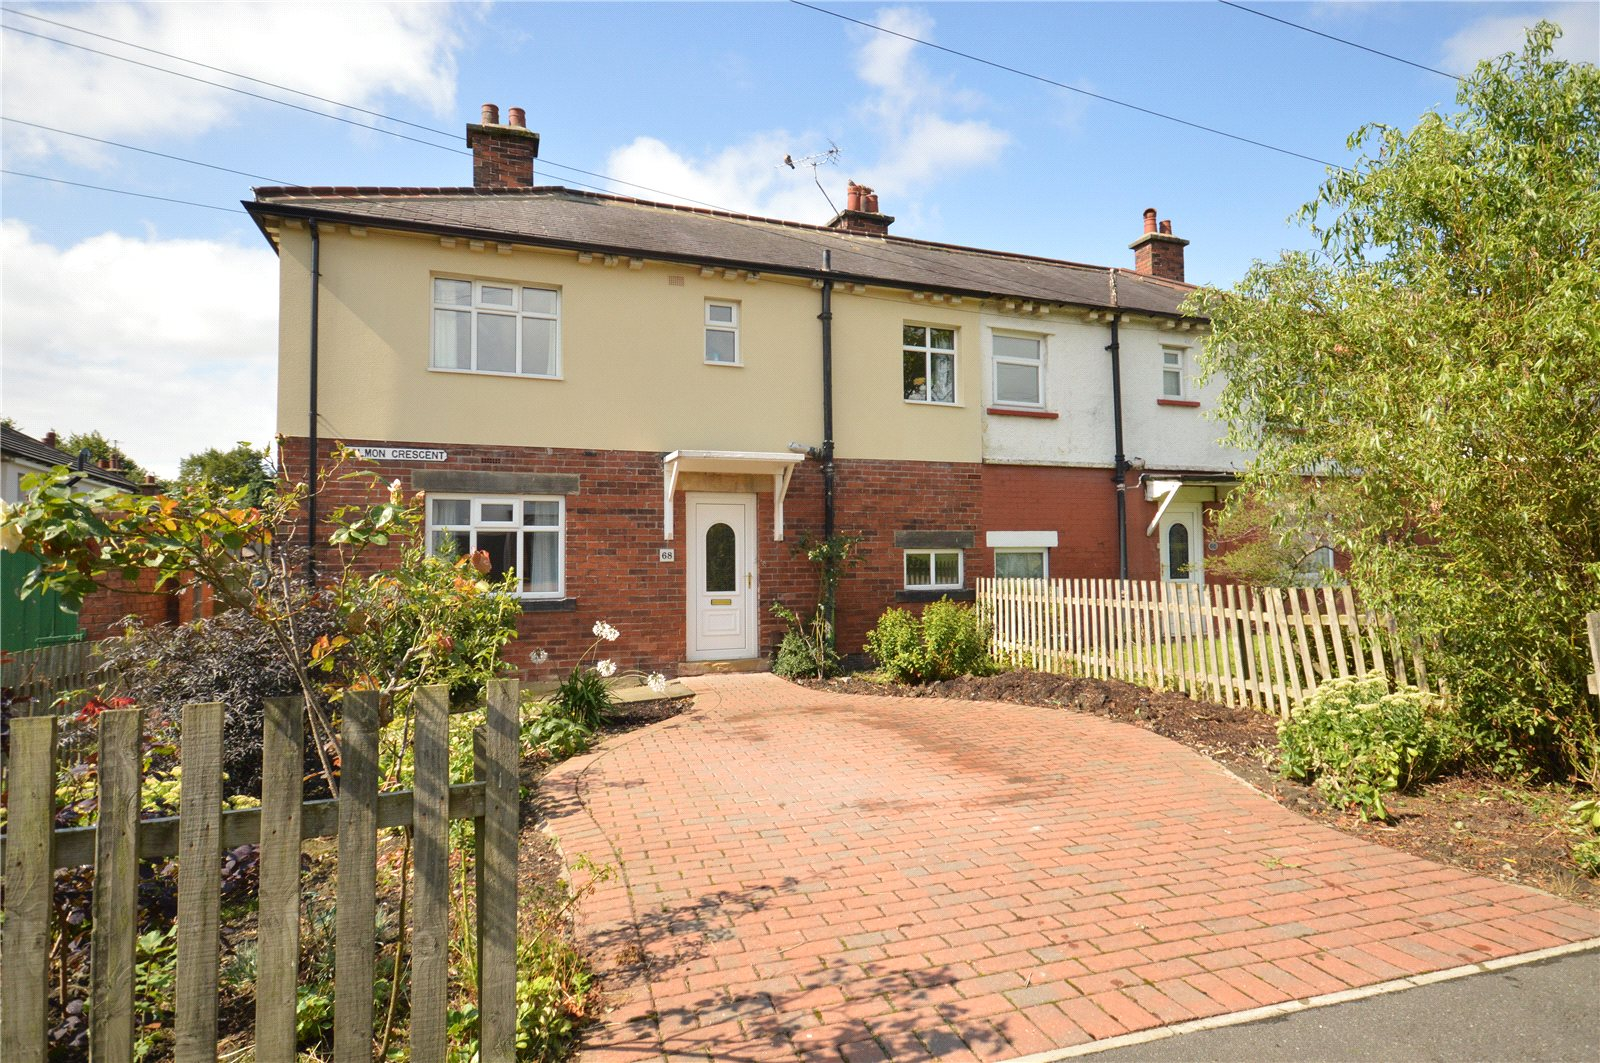 Property for sale in Horsforth, exterior semi-detached home